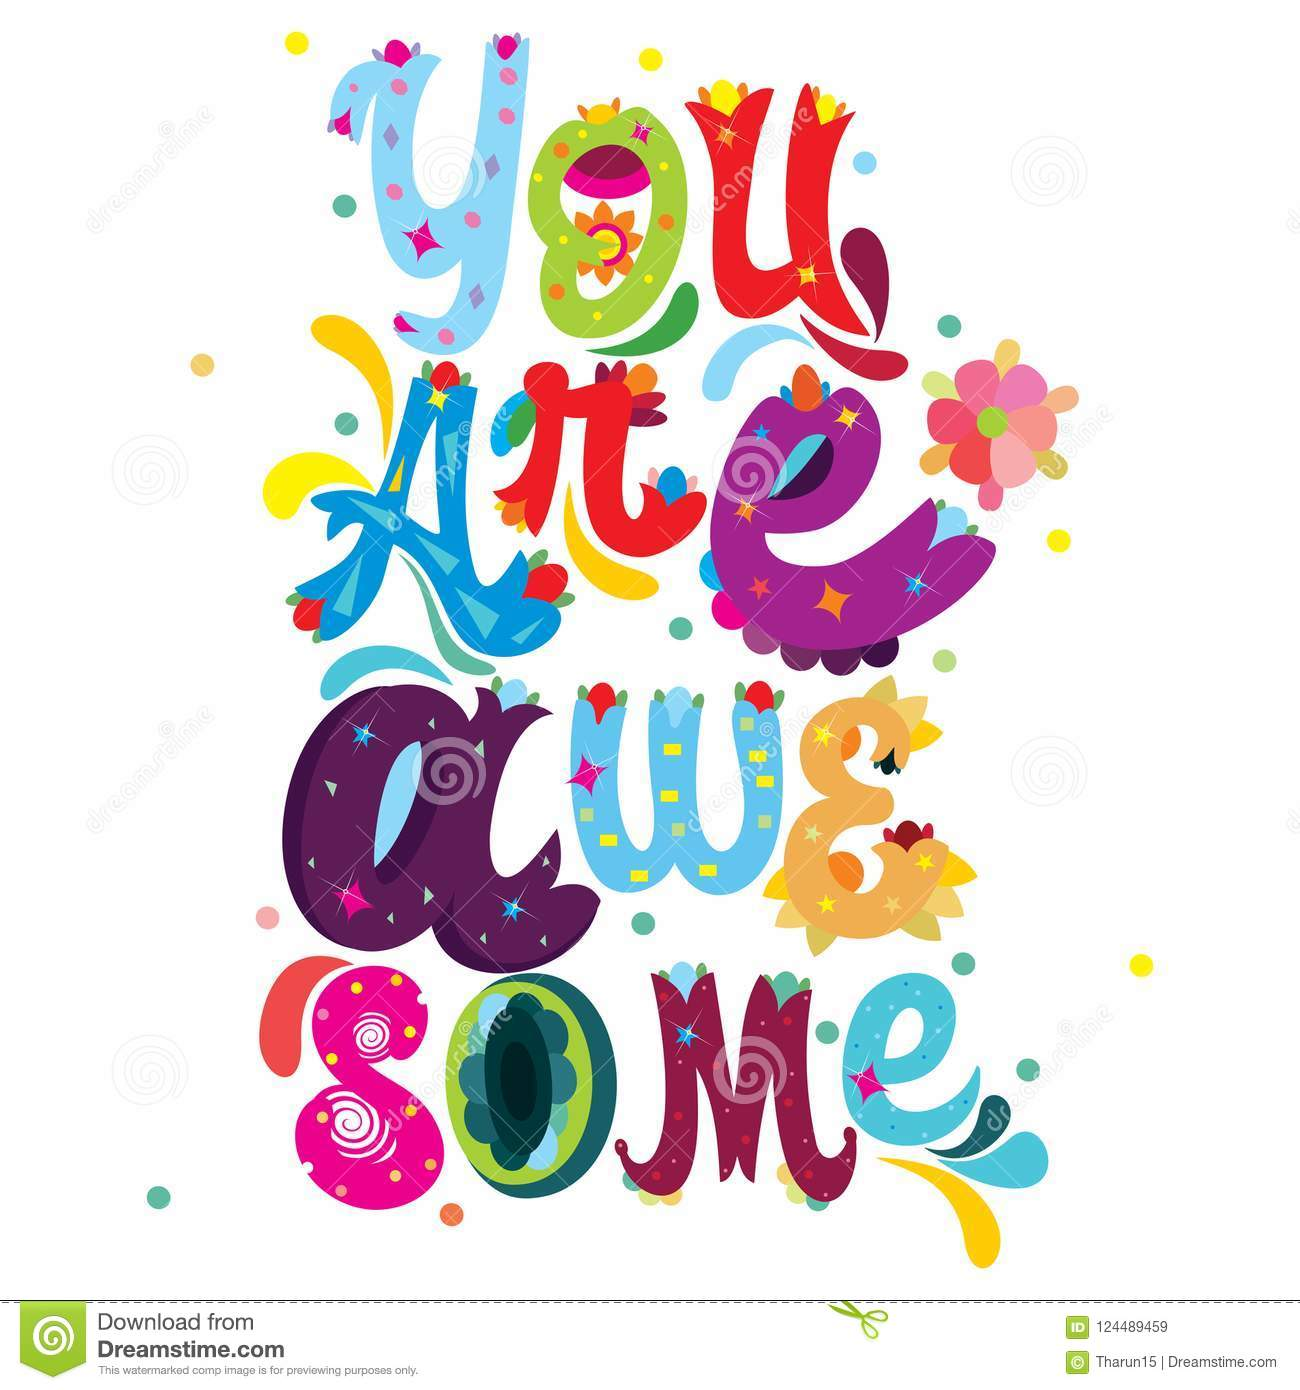 hight resolution of you are awesome colorful message with abstract floral decorative elements on an isolated white background